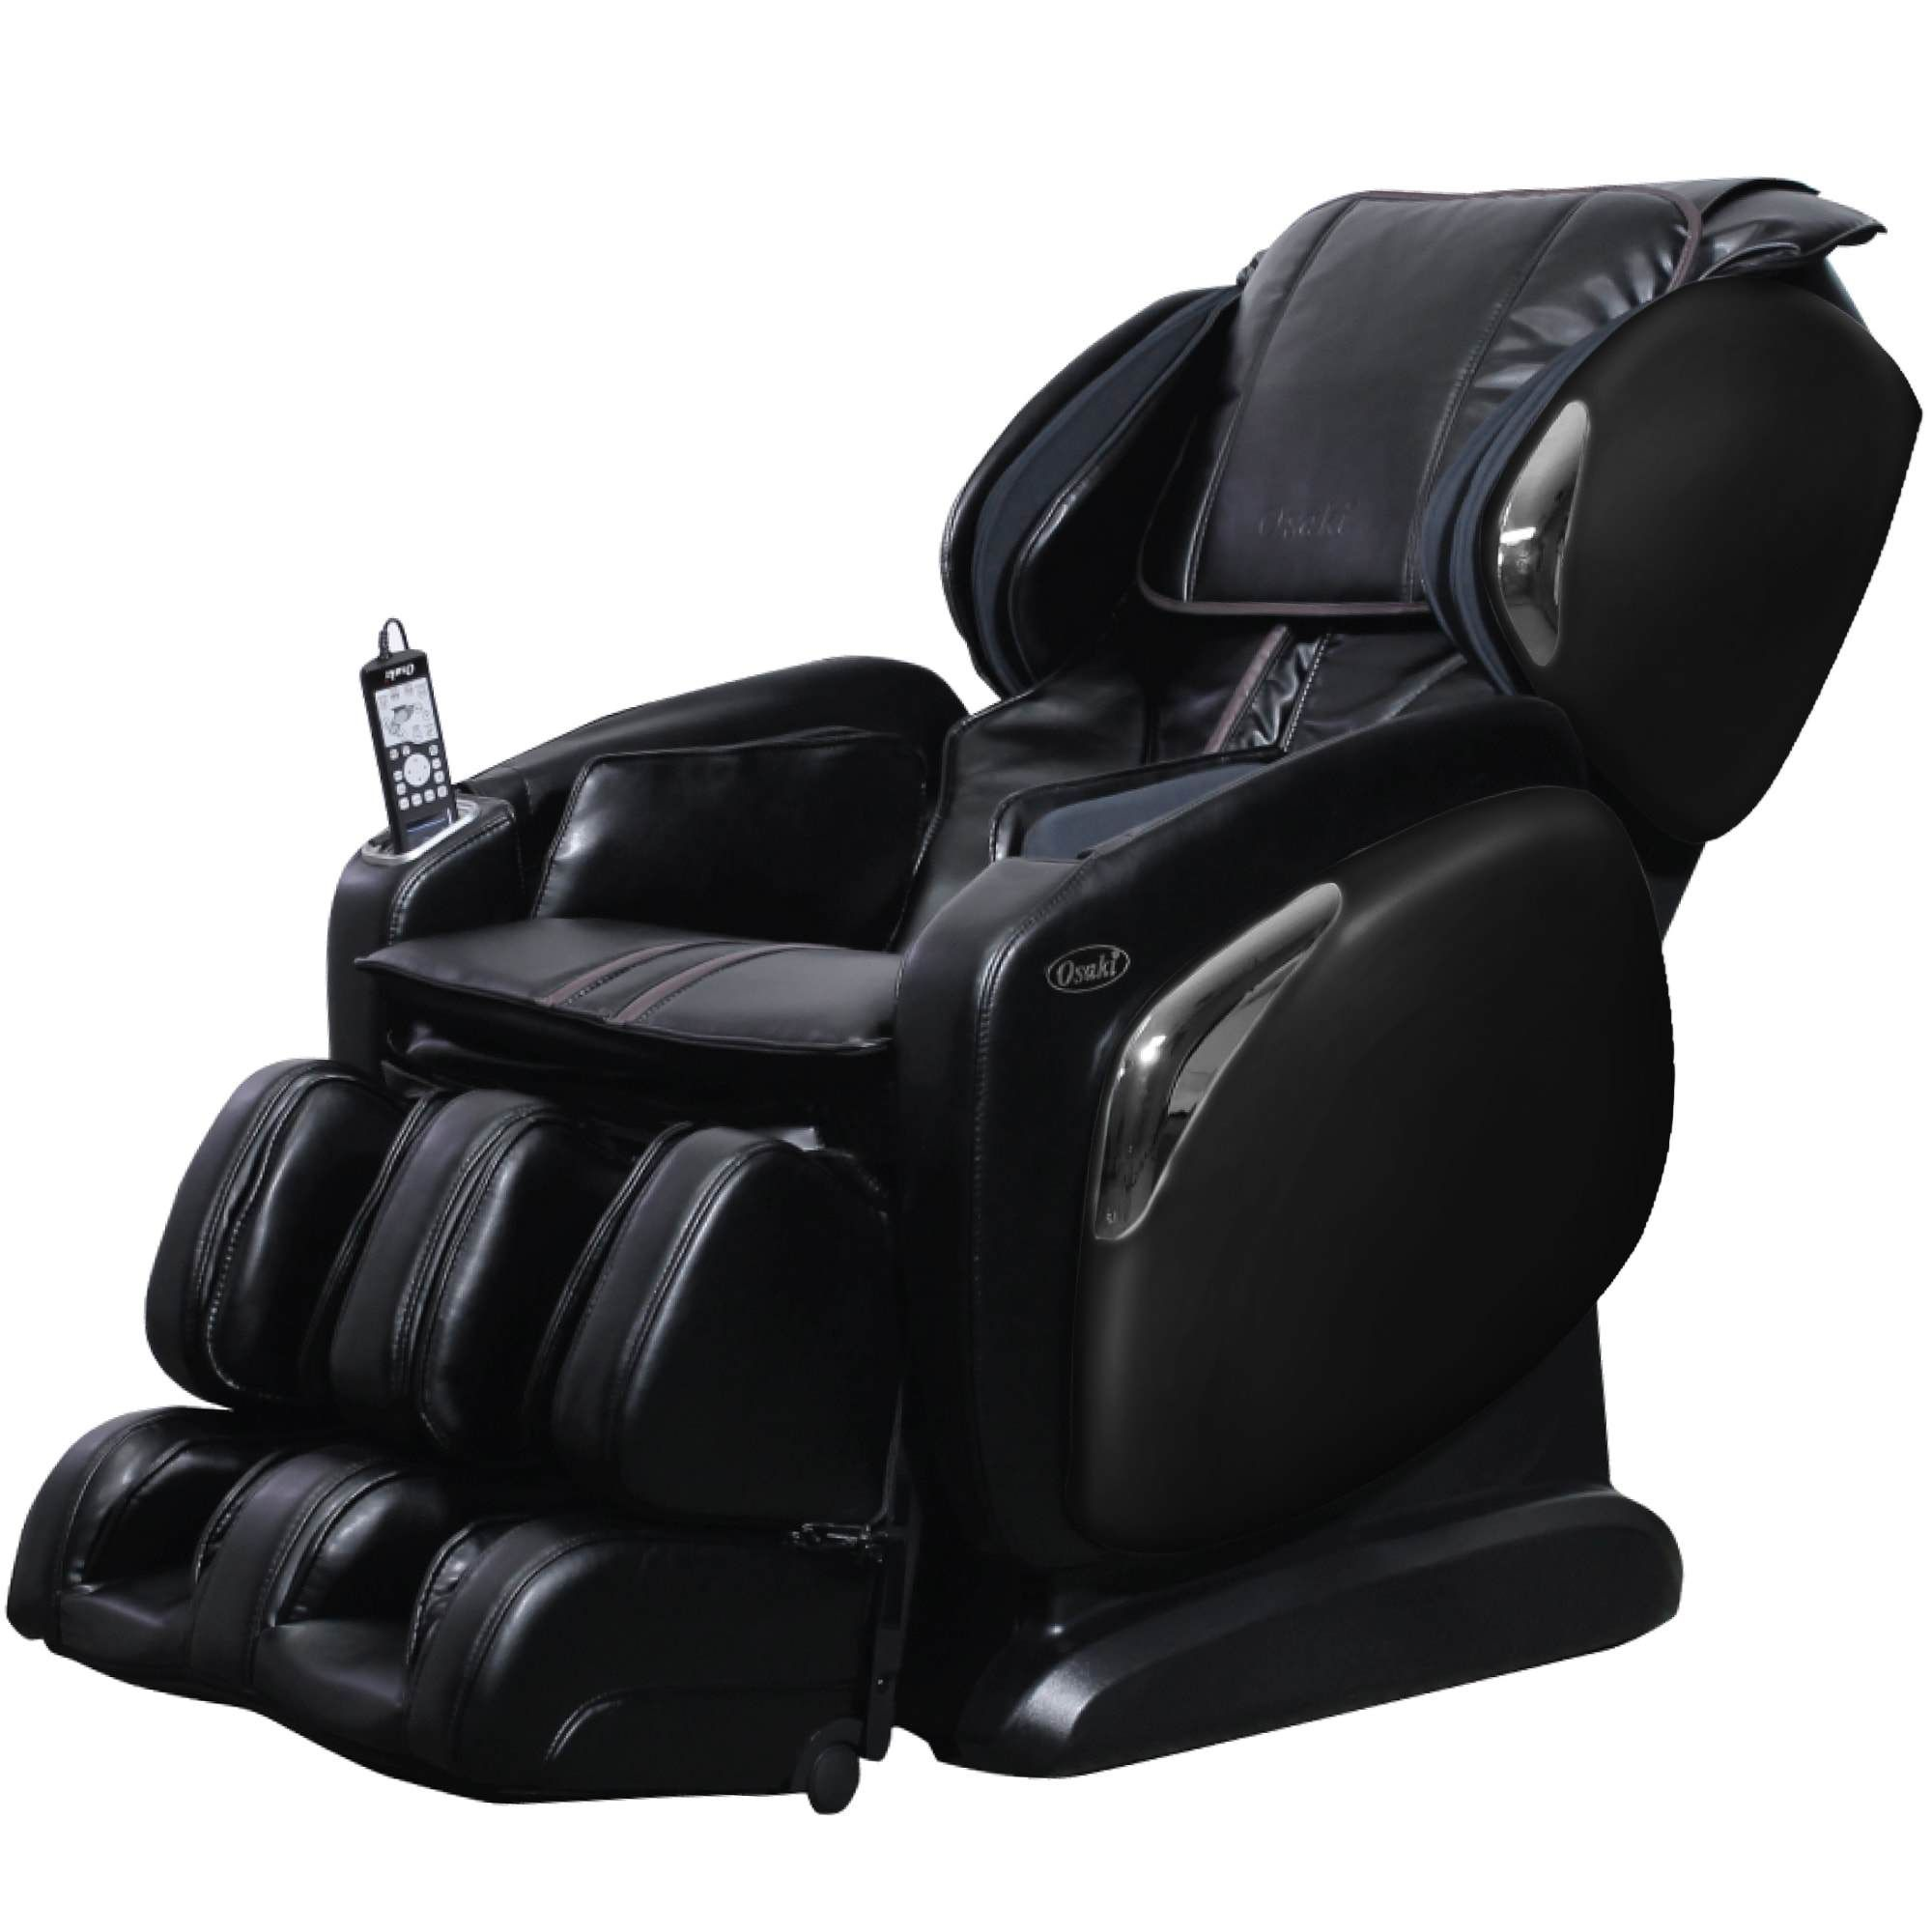 Osaki 4000LS Massage Chair Shiatsu massage, Electric